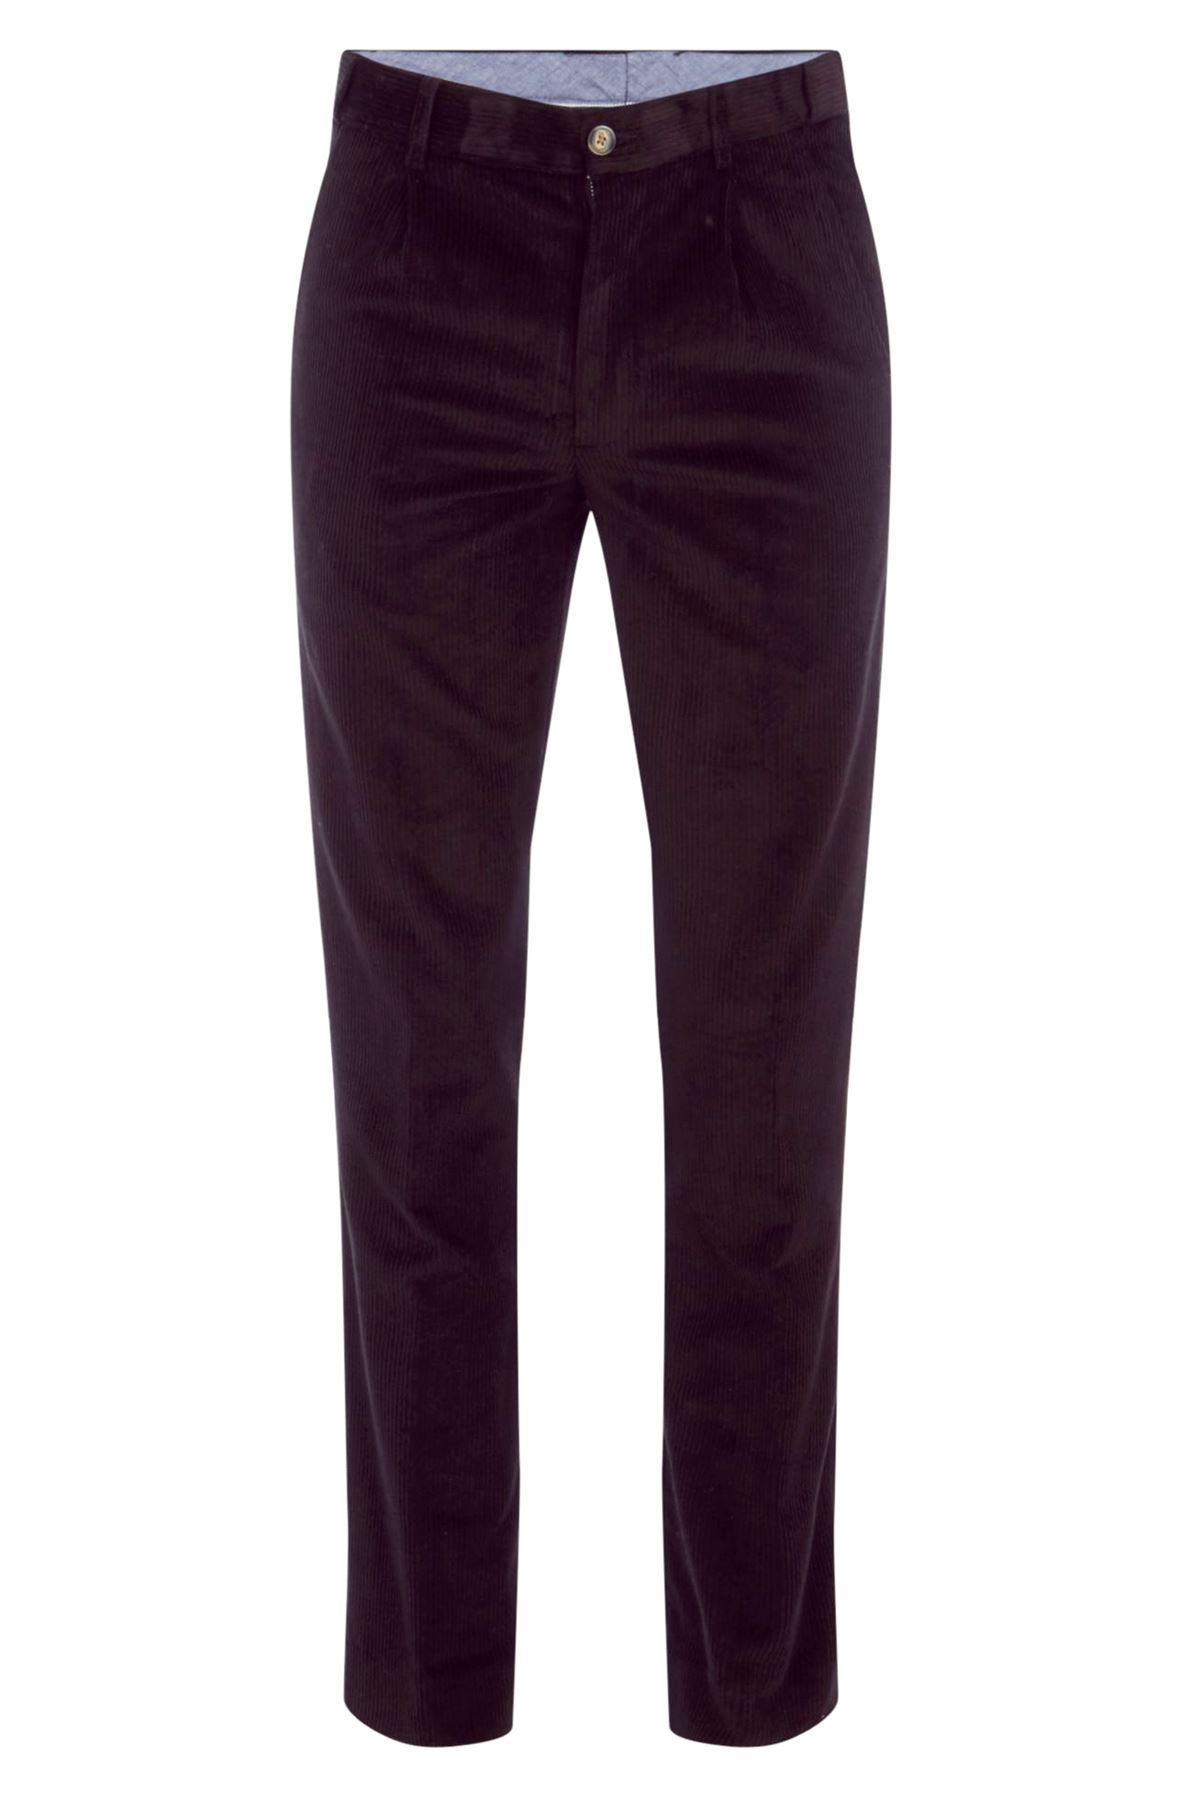 MAINE-Mens-Jumbo-Cord-Smart-Casual-Trousers-SALE-Were-42 thumbnail 6